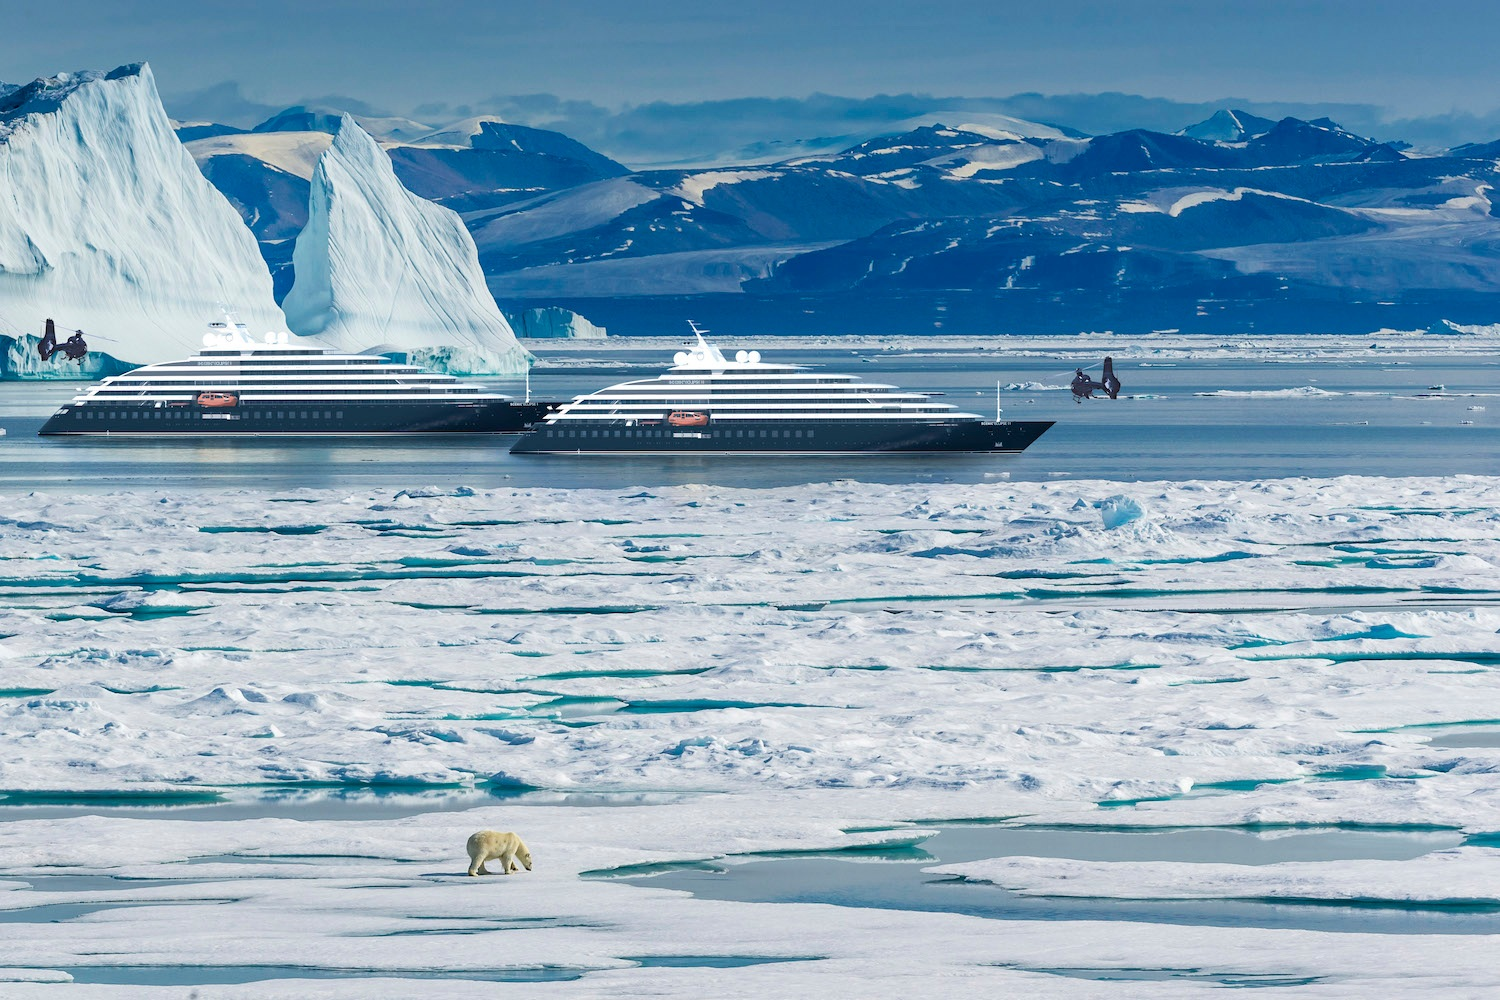 Explore the Arctic in Luxury - The Scenic Eclipse fleet takes ocean cruising to a whole new level, giving guests the opportunity to explore above and beyond what was previously imaginable. From nature to cultural encounters and the Arctic to the Antarctic, Scenic Eclipse is sure to feature a voyage that excites you.